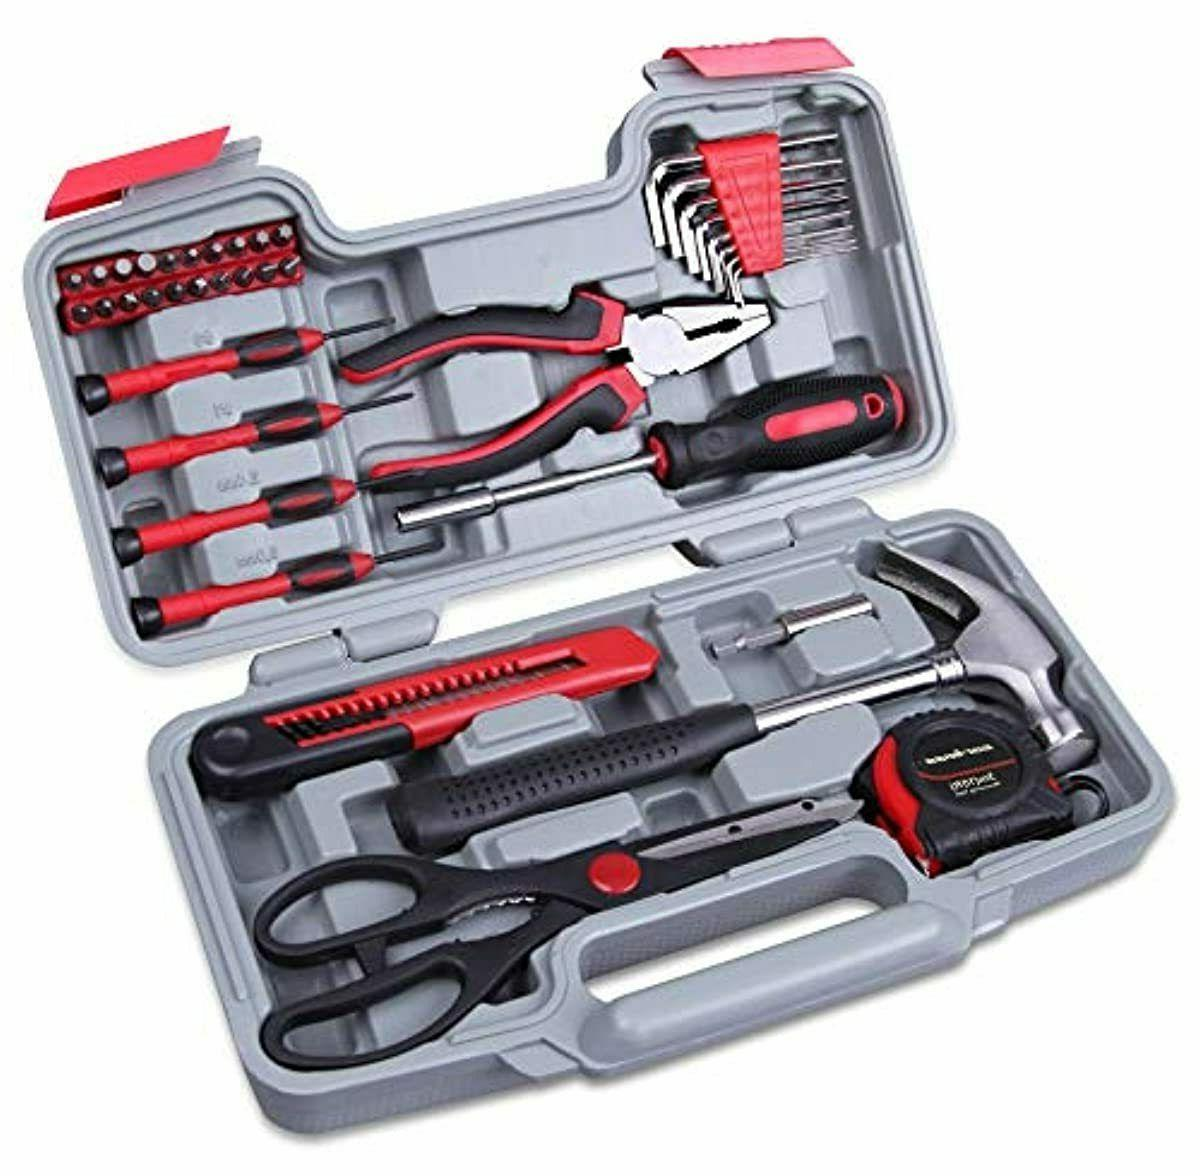 red tool set general household hand tool